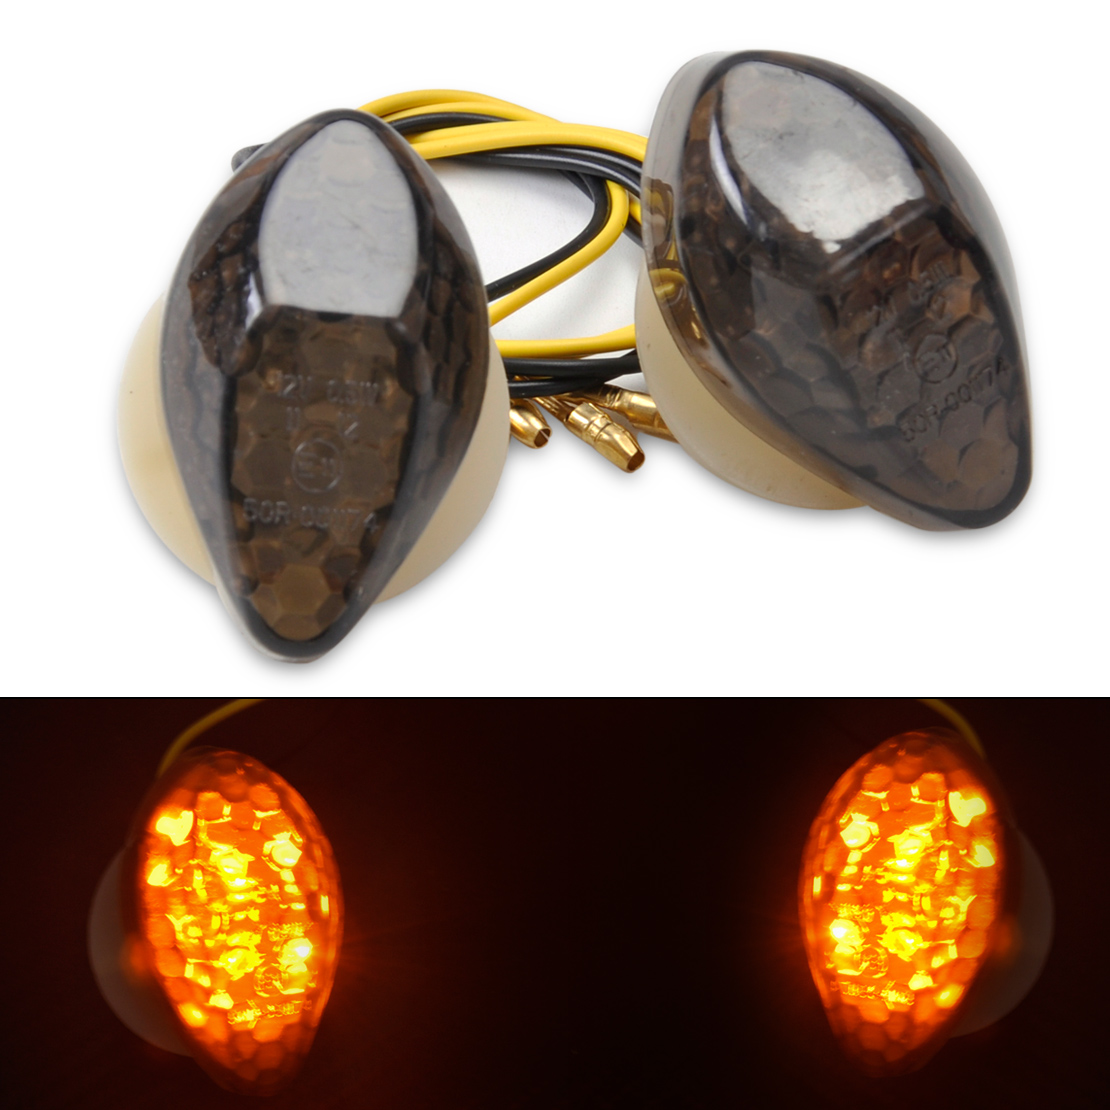 beler 1Set Custom Smoke LED Flush Mount Turn Signal Blinker Marker For Honda CBR 600RR 1000RR 600 F3 600 F4i 900RR CB 919F